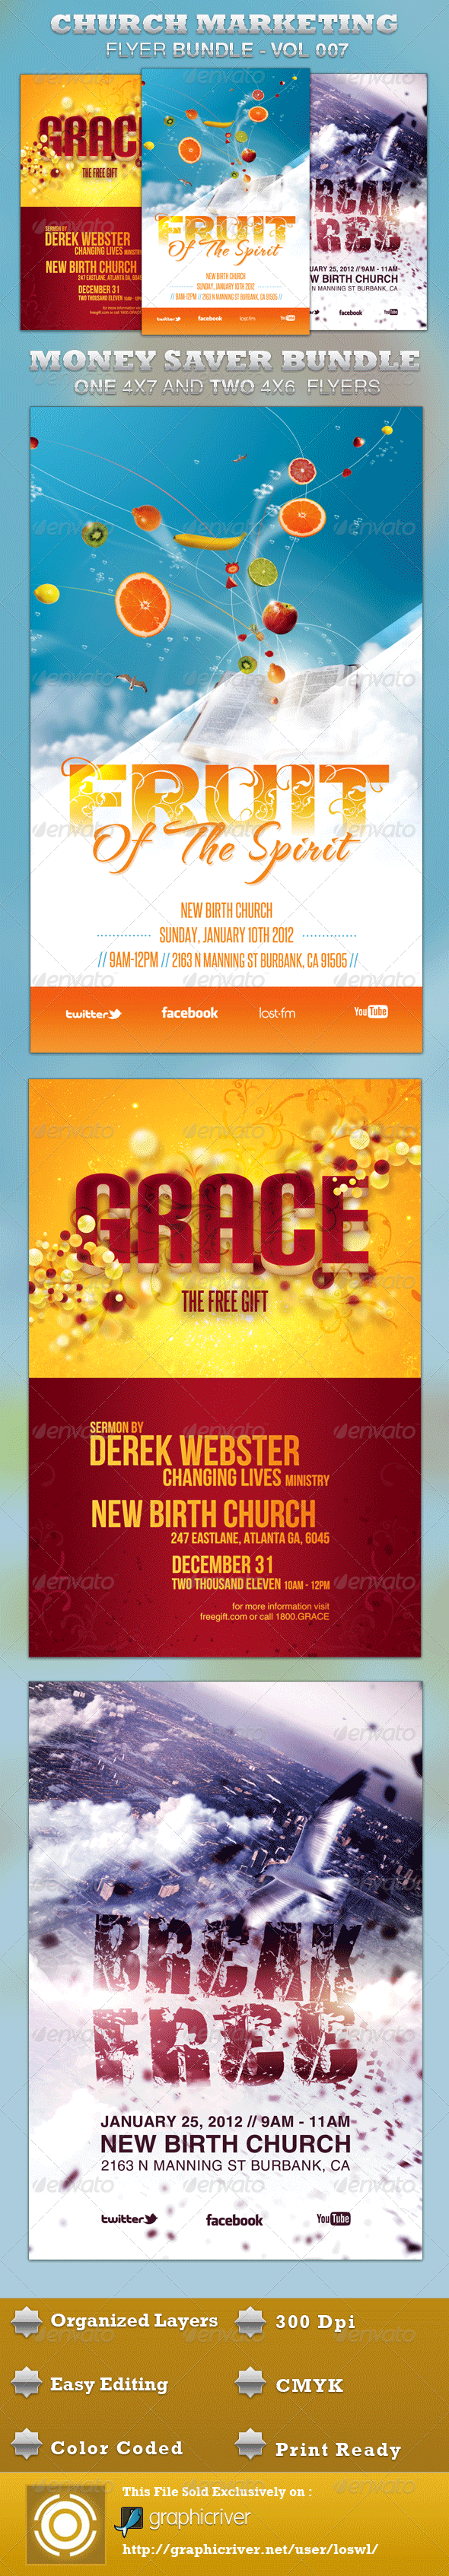 Church Marketing Flyer Bundle-Vol 007 - Church Flyers